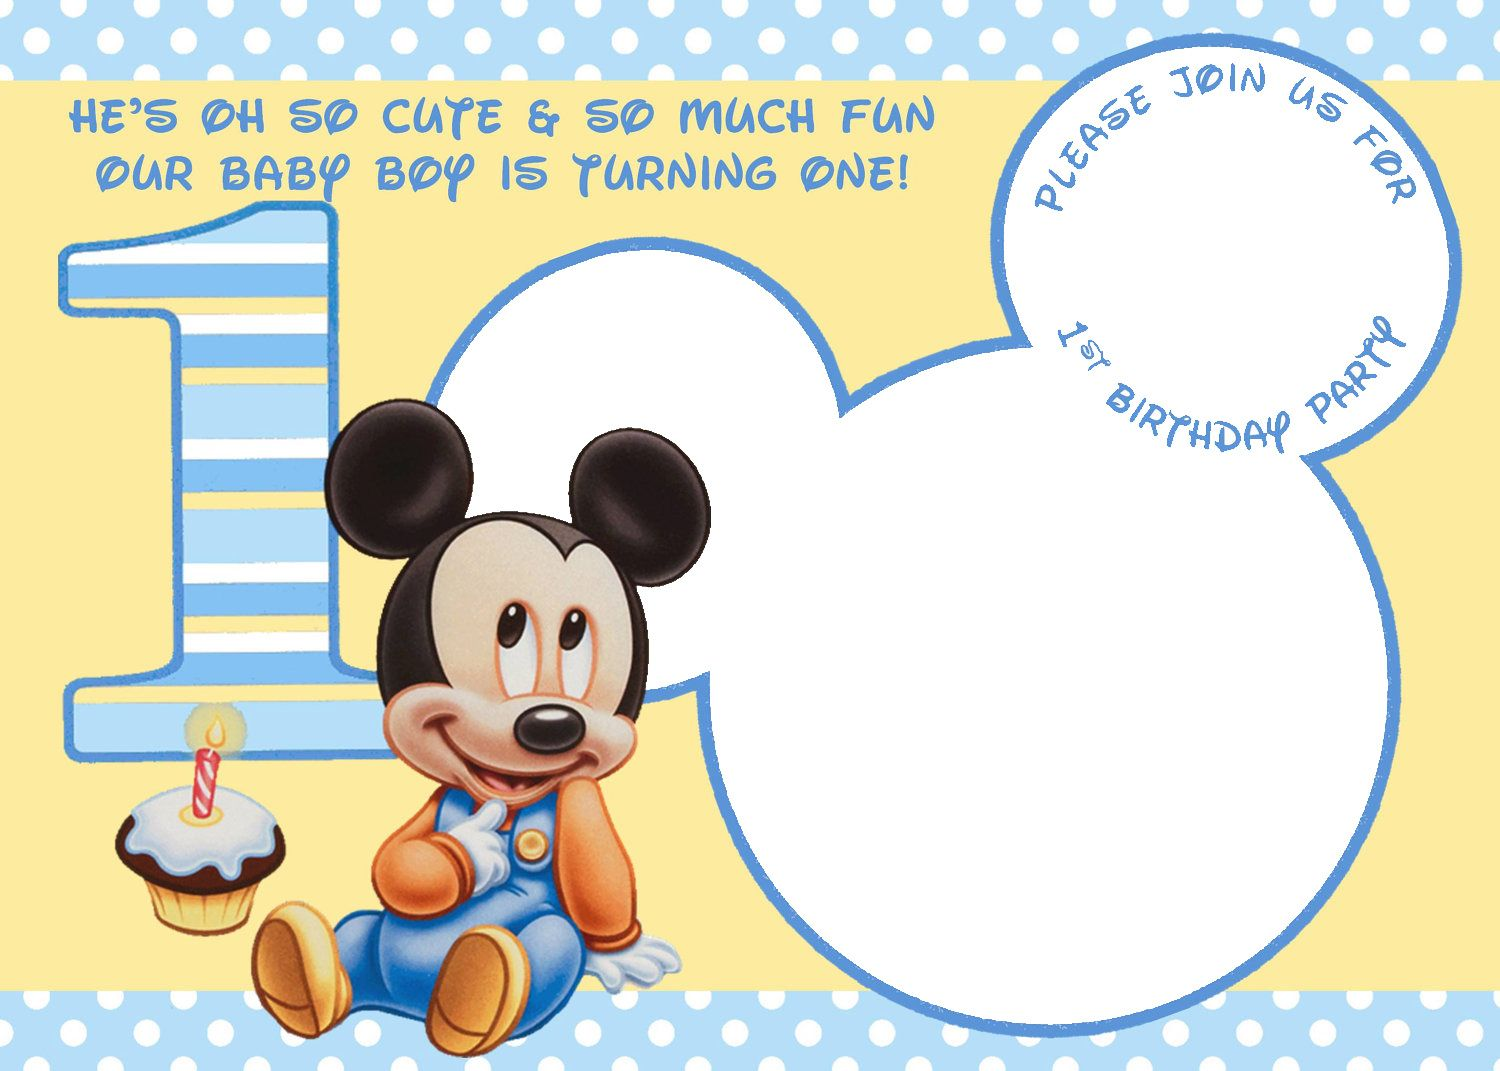 photograph relating to Free Printable Mickey Mouse 1st Birthday Invitations called Free of charge Printable Mickey Mouse Invites - One of a kind